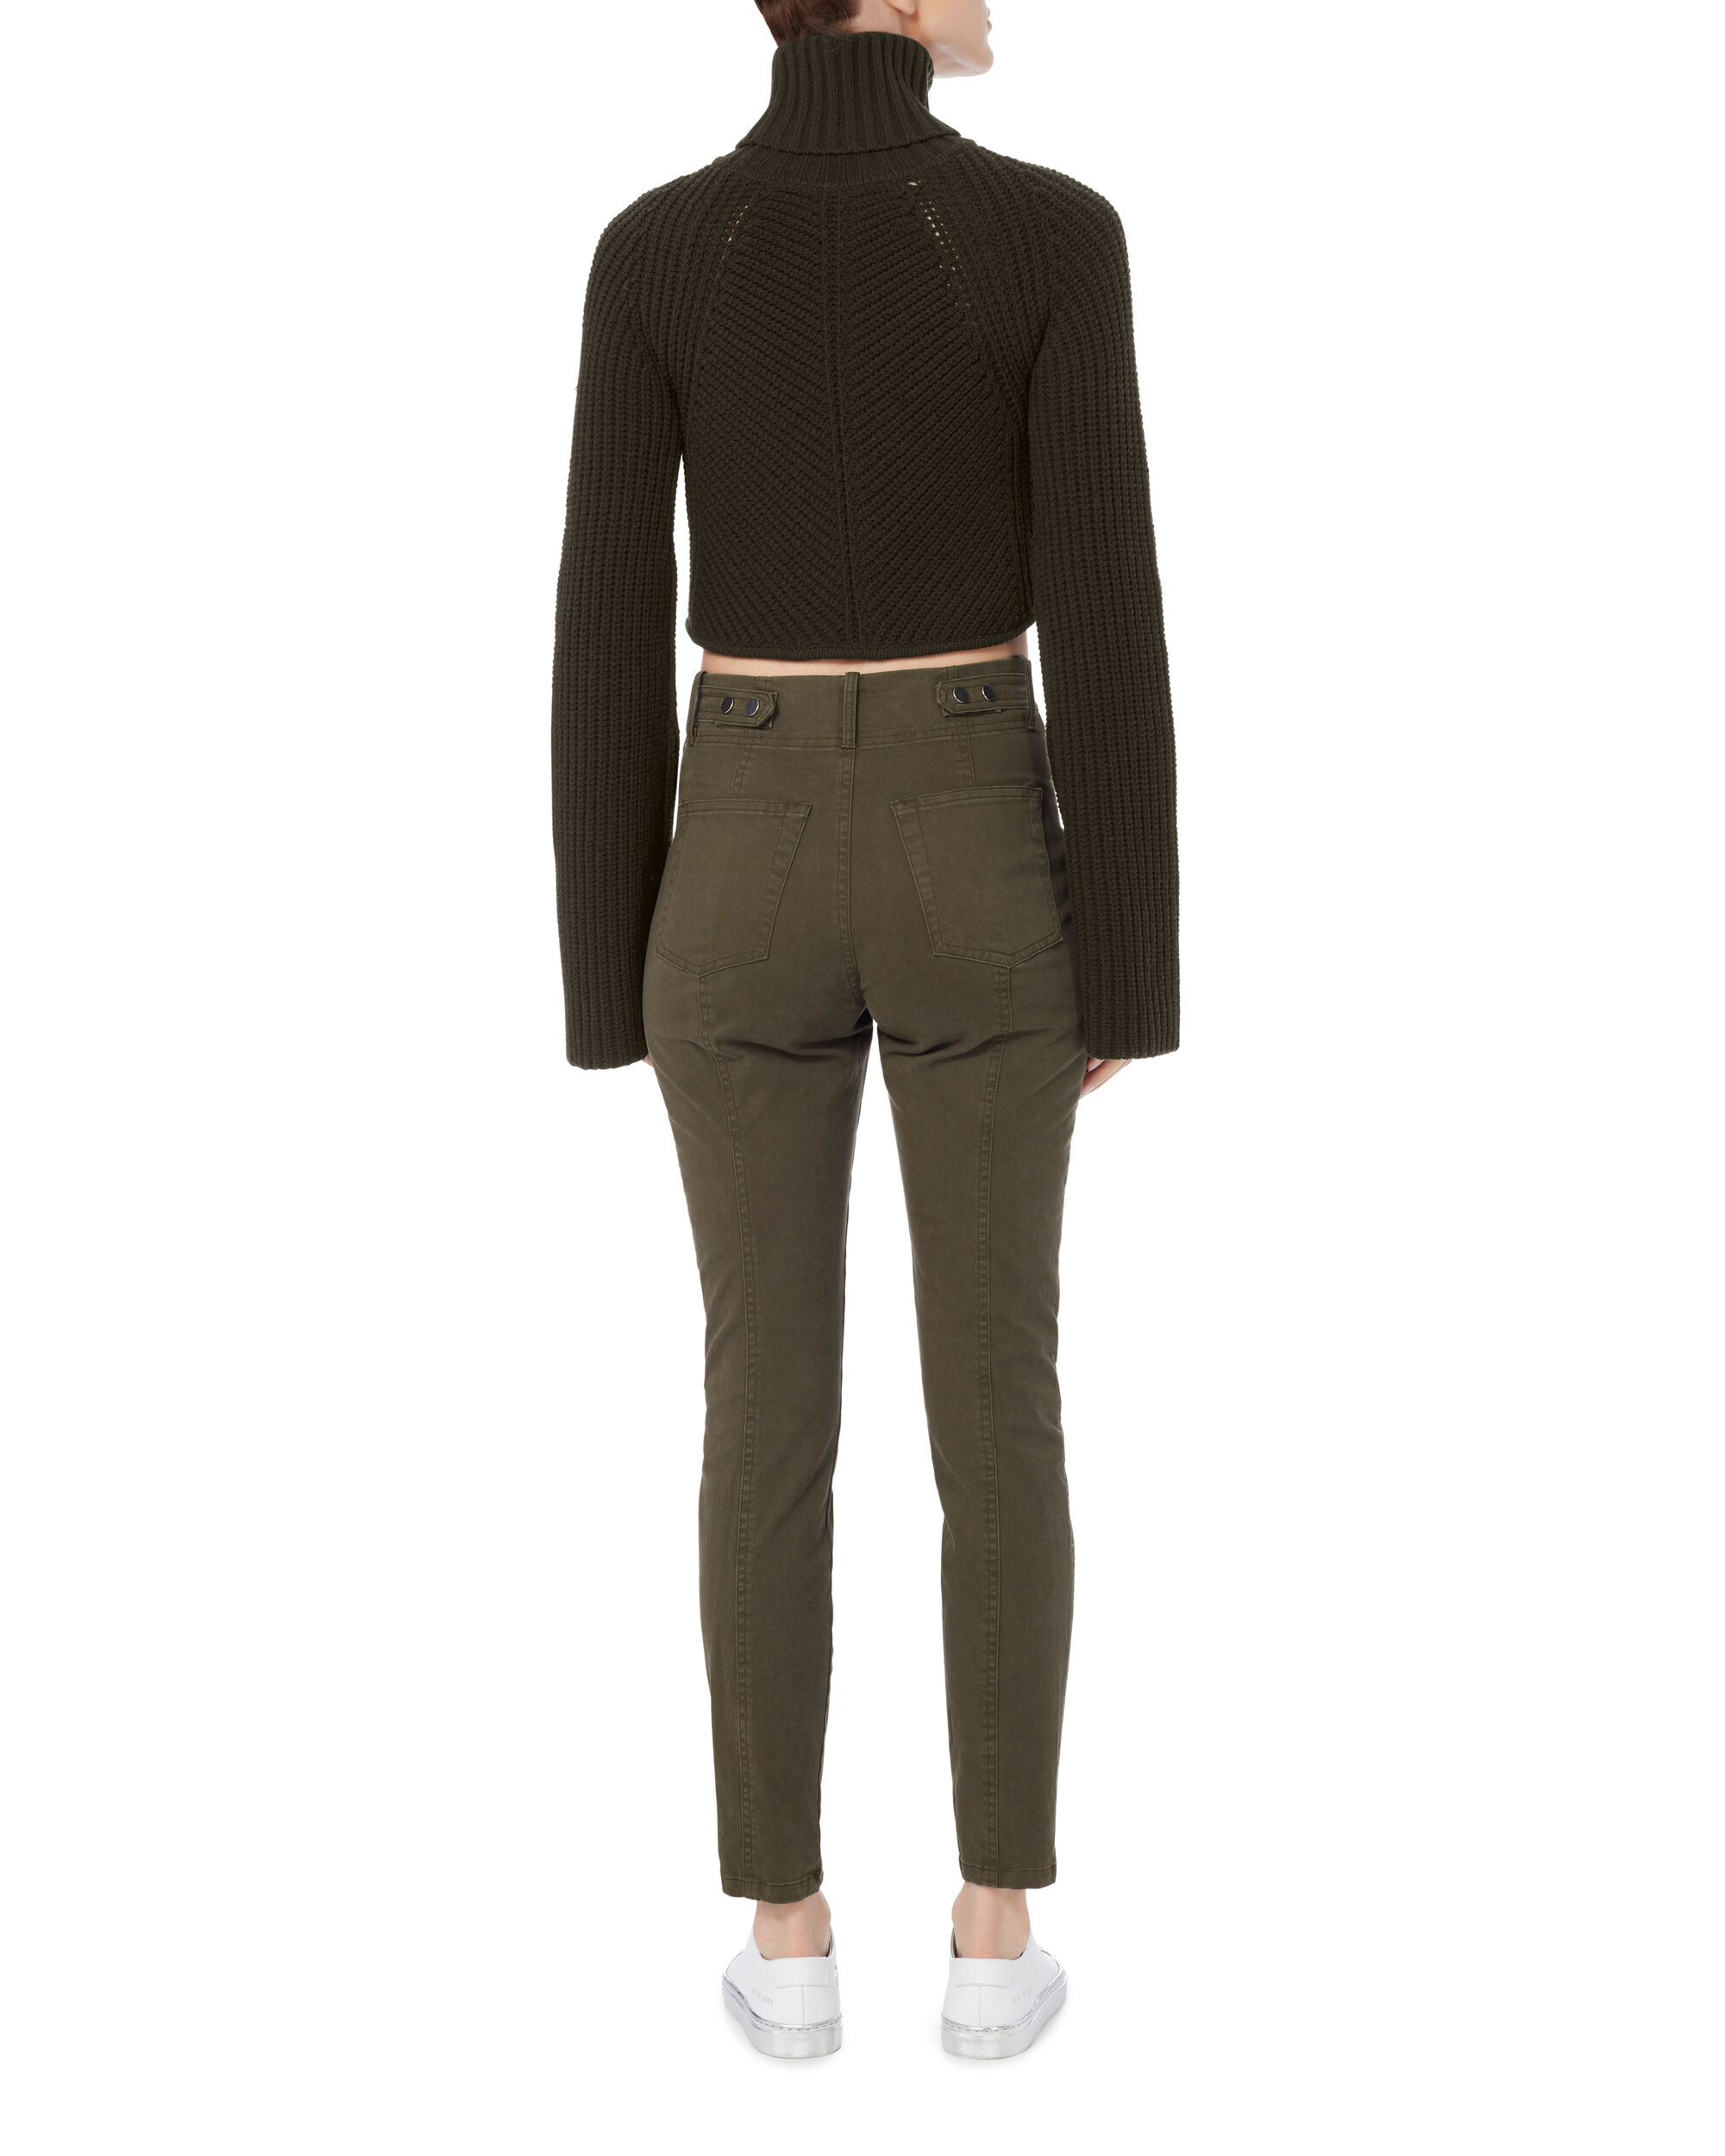 Irvyn Cropped Turtleneck Sweater, EMERALD, hi-res